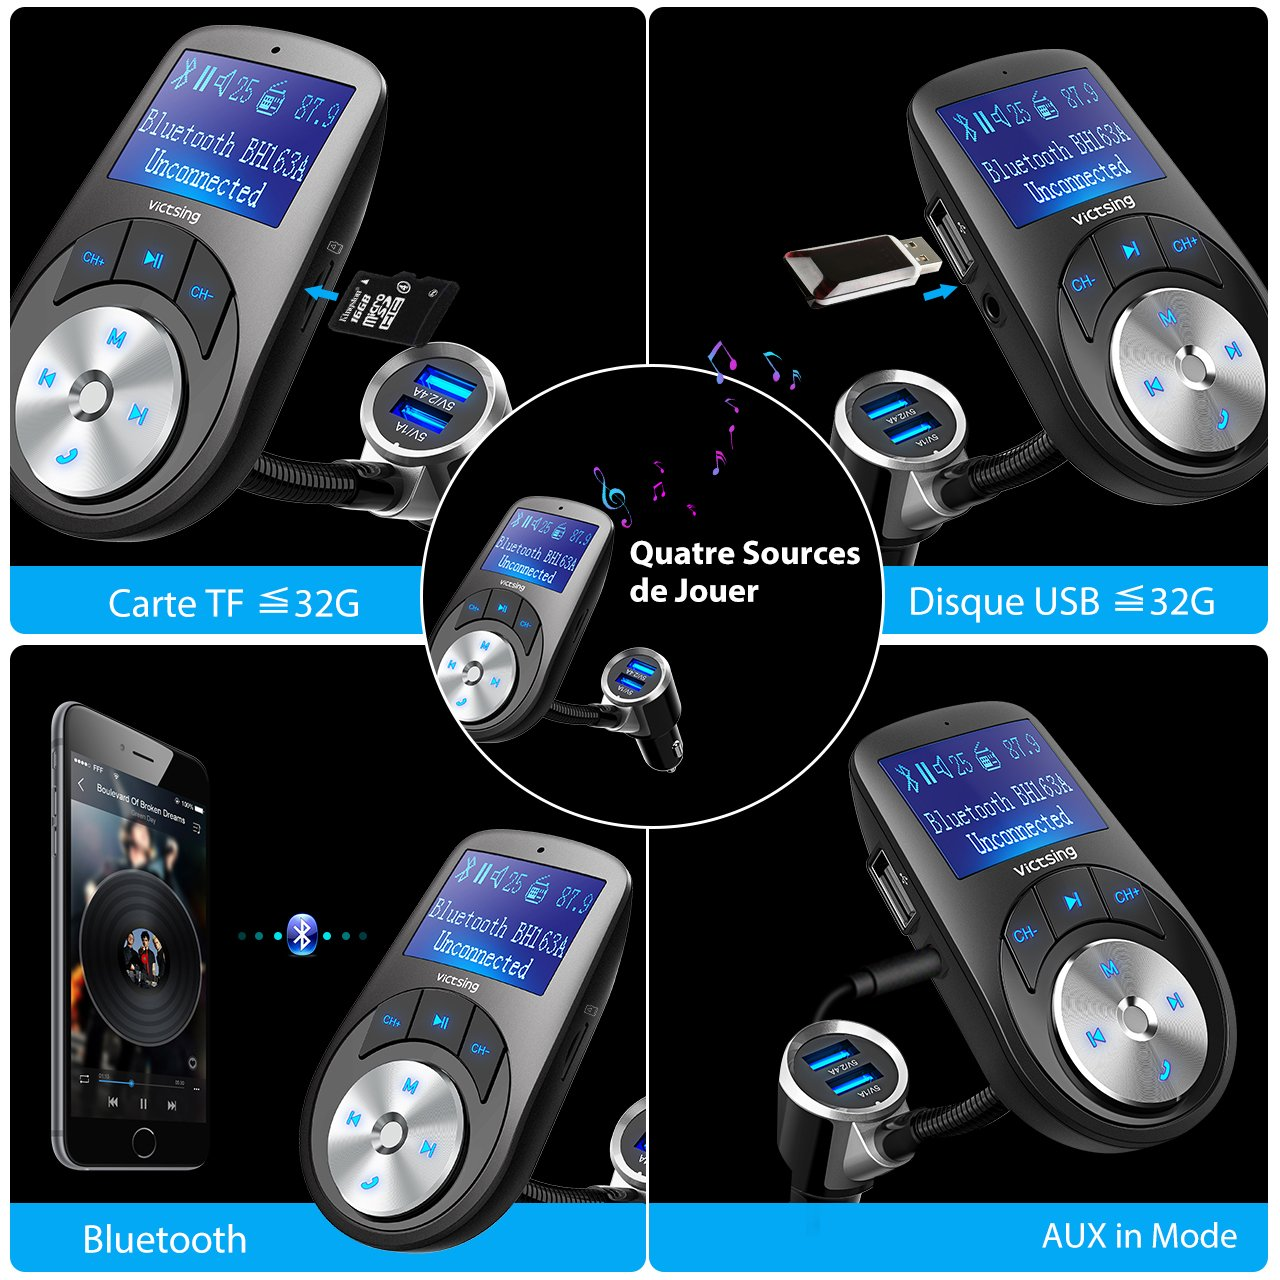 VicTsing FM-Transmitter, Bluetooth, Freisprecheinrichtung, kabellos, Kfz-Ladeger/ä t, USB, Musik-Player, mit Display 1,44 Zoll /(1,44 cm/), Displayschalter, zwei USB-Ports, AUX-Eingang//Ausgang, TF-Kartensteckplatz f/ü r iPhone 7 7 Plus SE, Galaxy S7